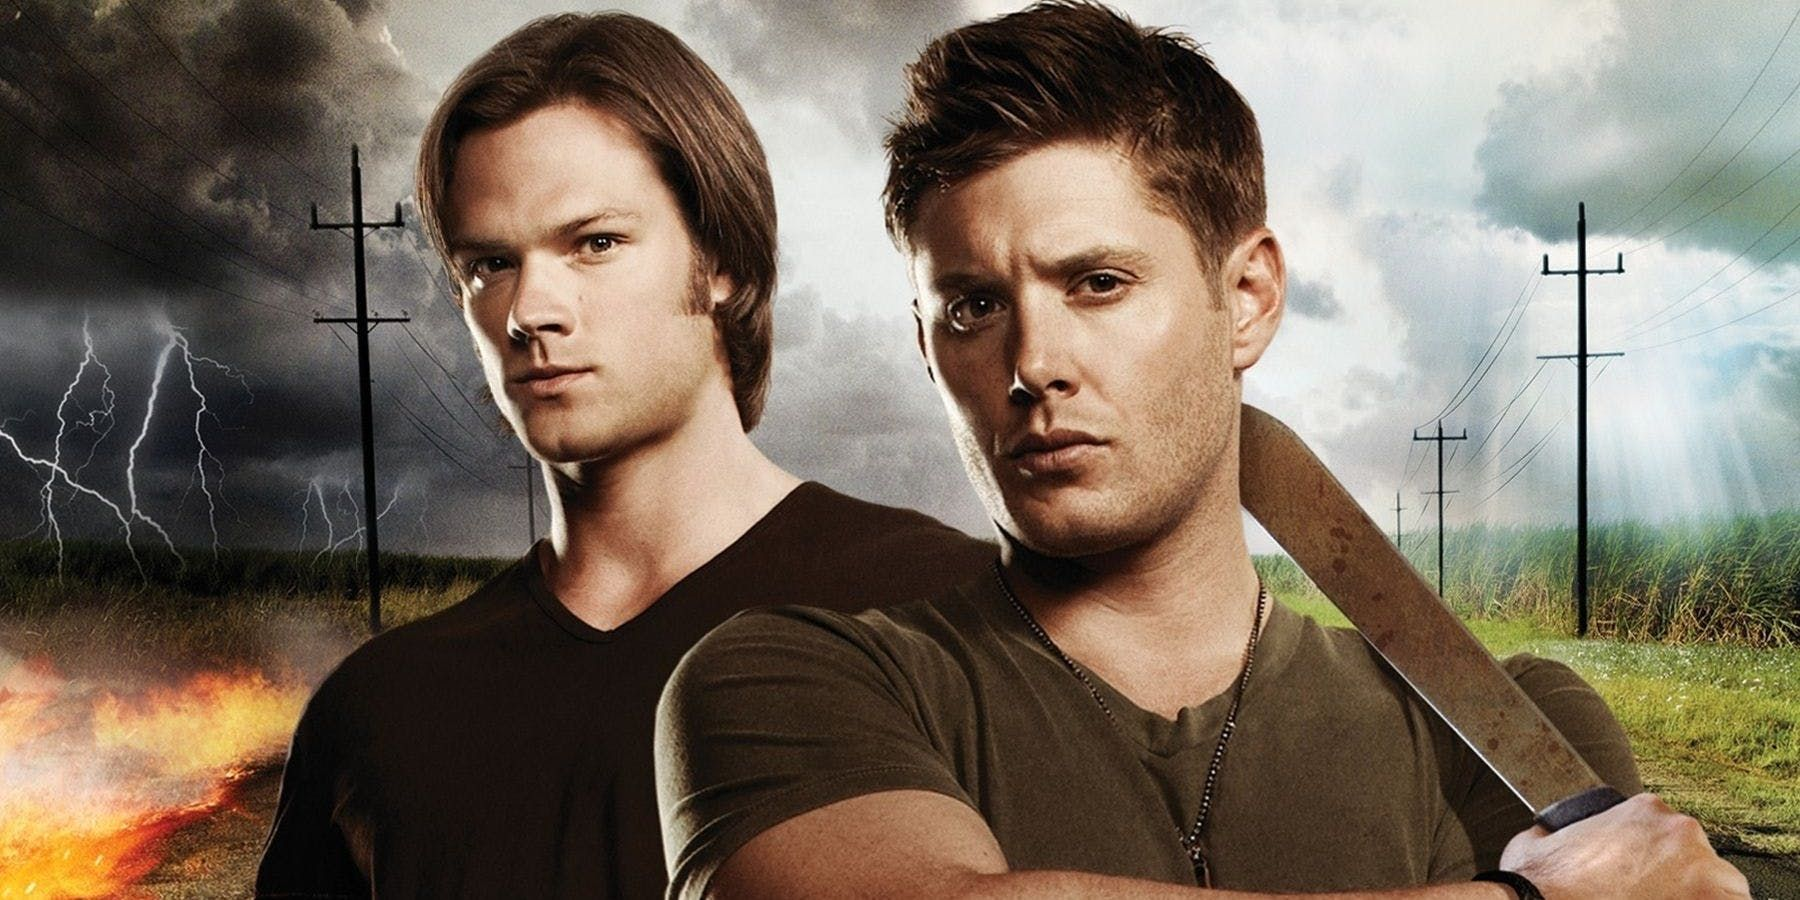 Supernatural: 20 Things That Make No Sense About Dean And Sam's